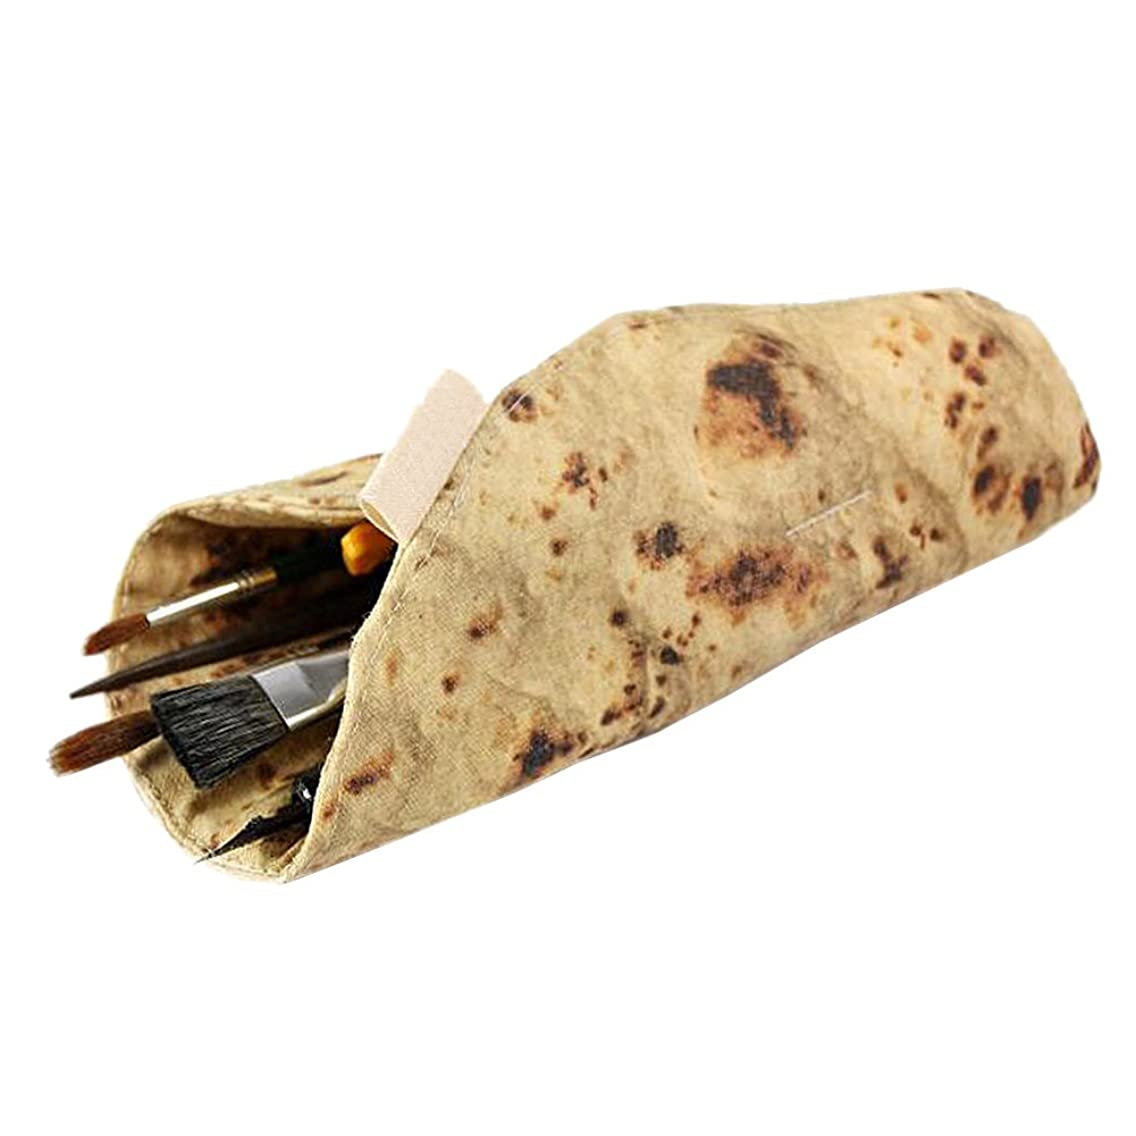 ZTL Creative Tortilla Pen Pencil Case Funny Burrito Stationery Pencil Pouch Pen Holder Makeup Case Bag